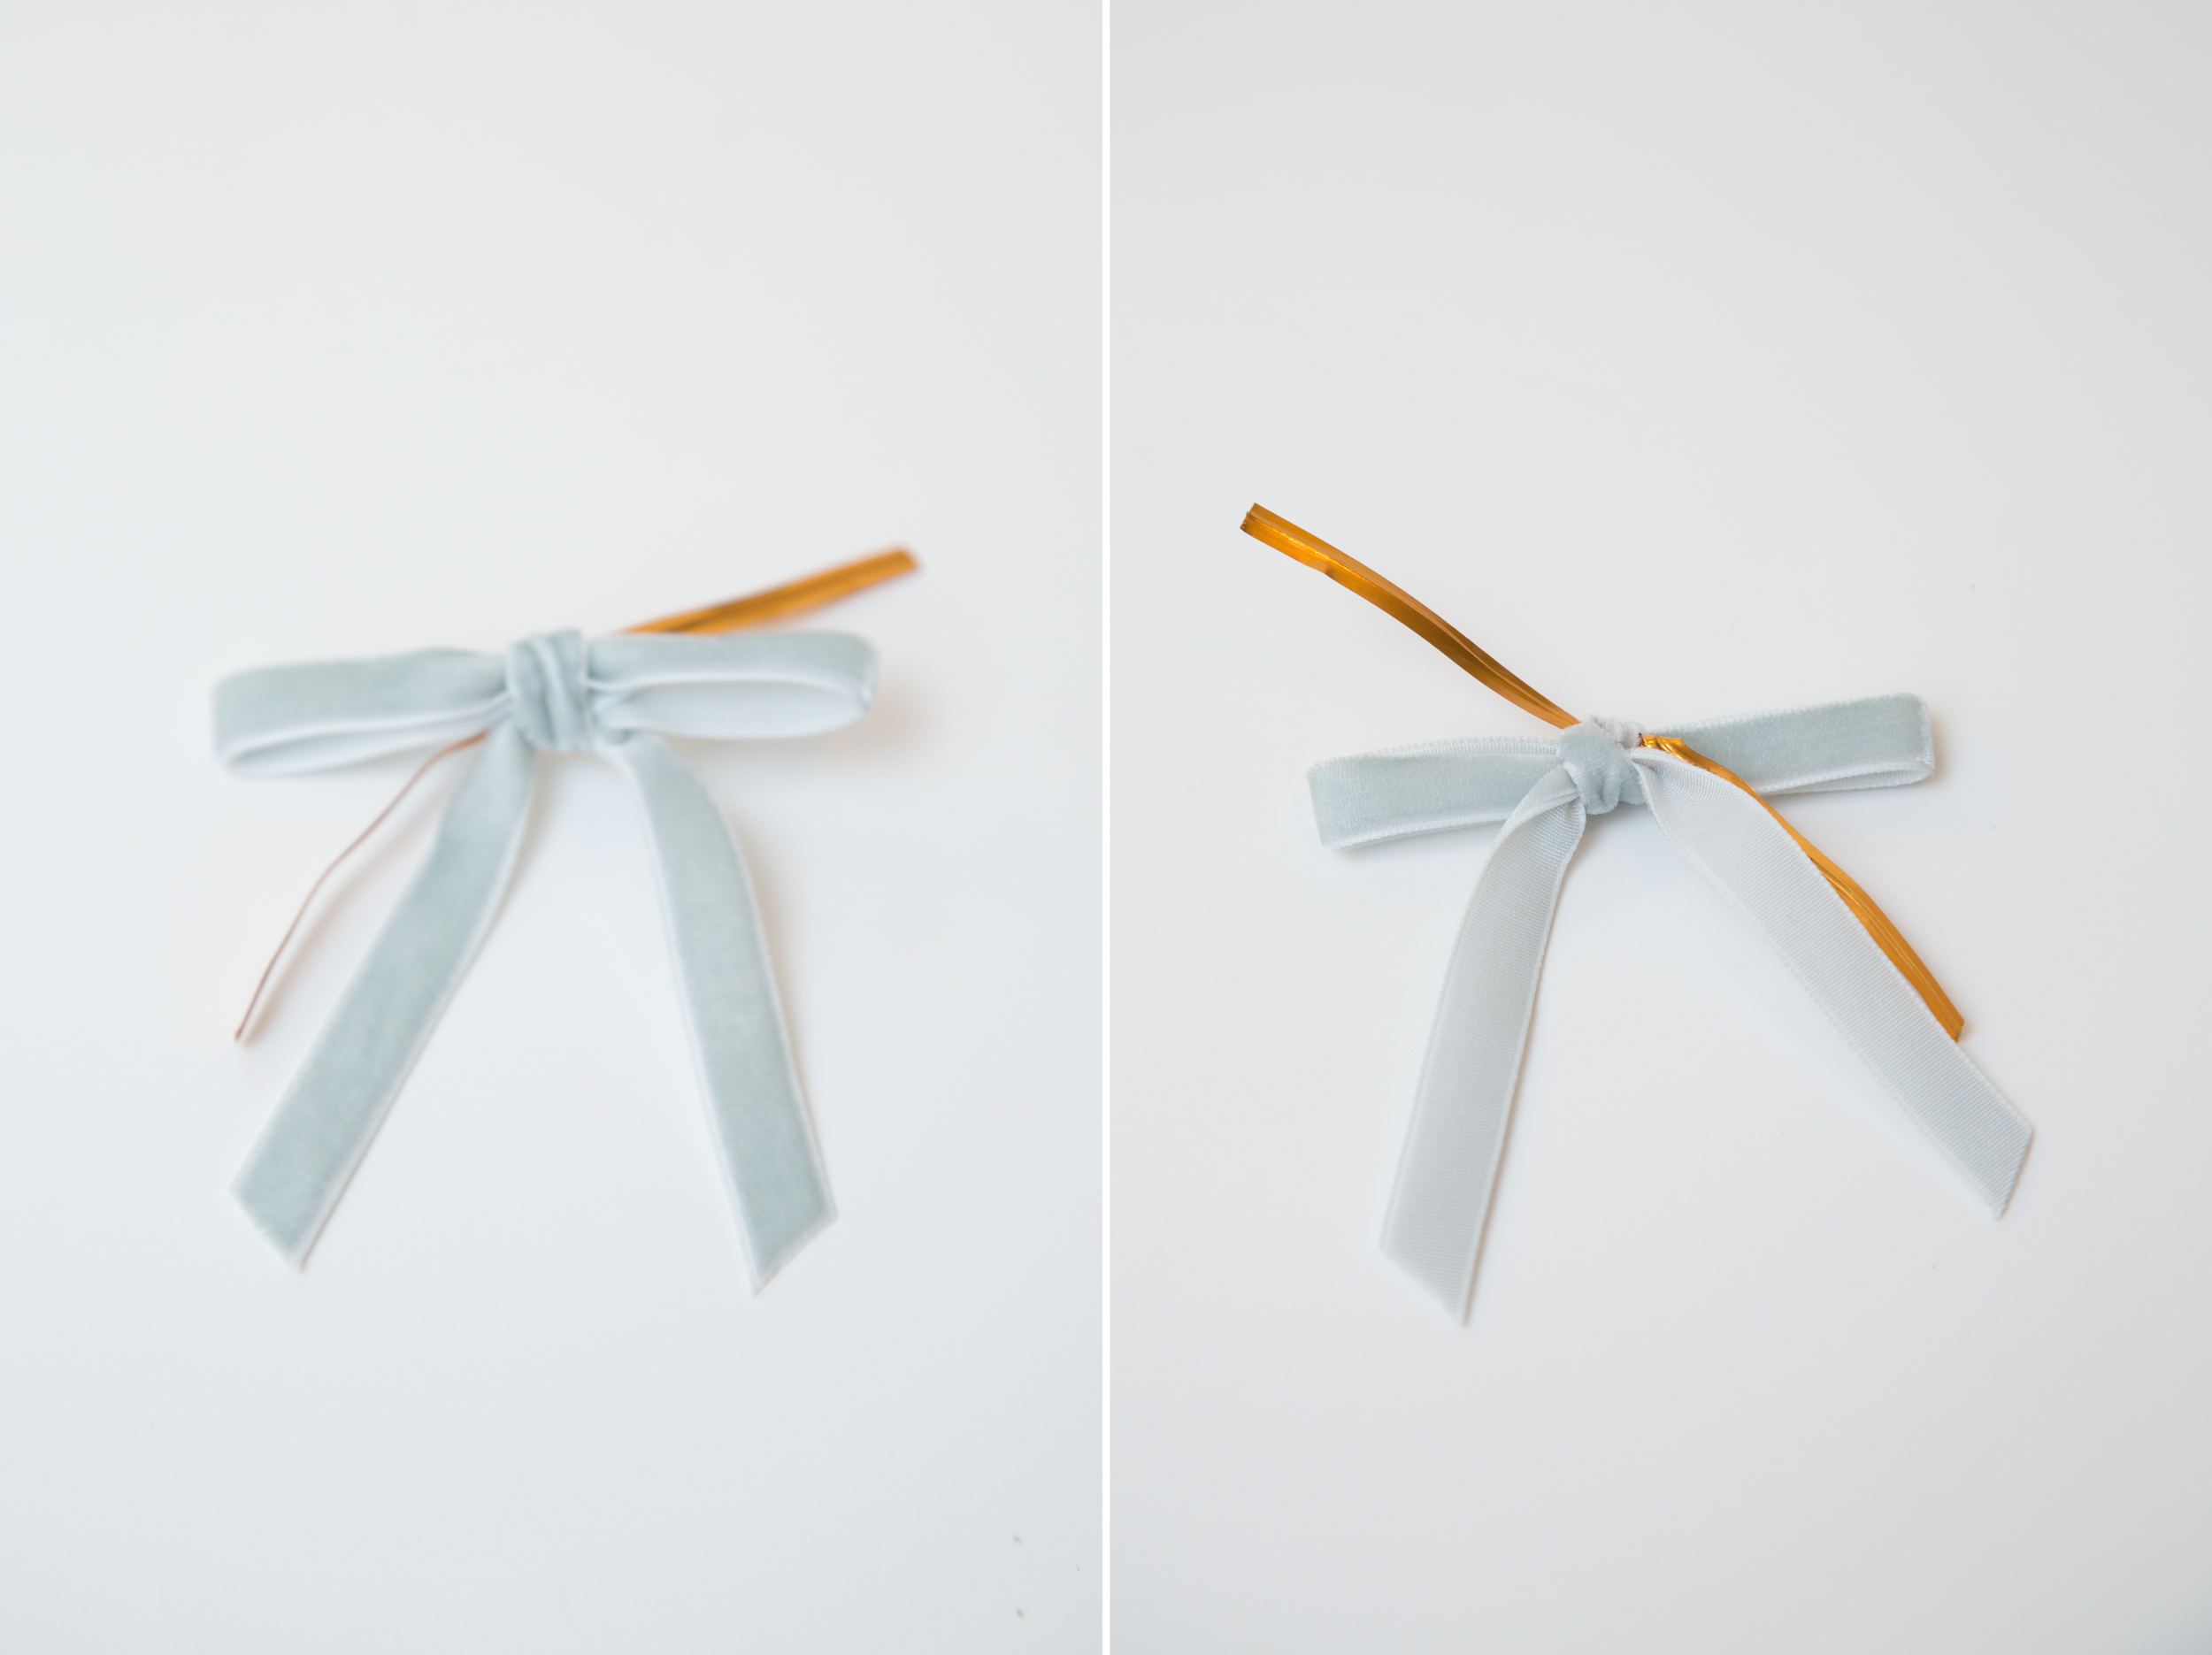 Ribbon with Twist Tie Close-up